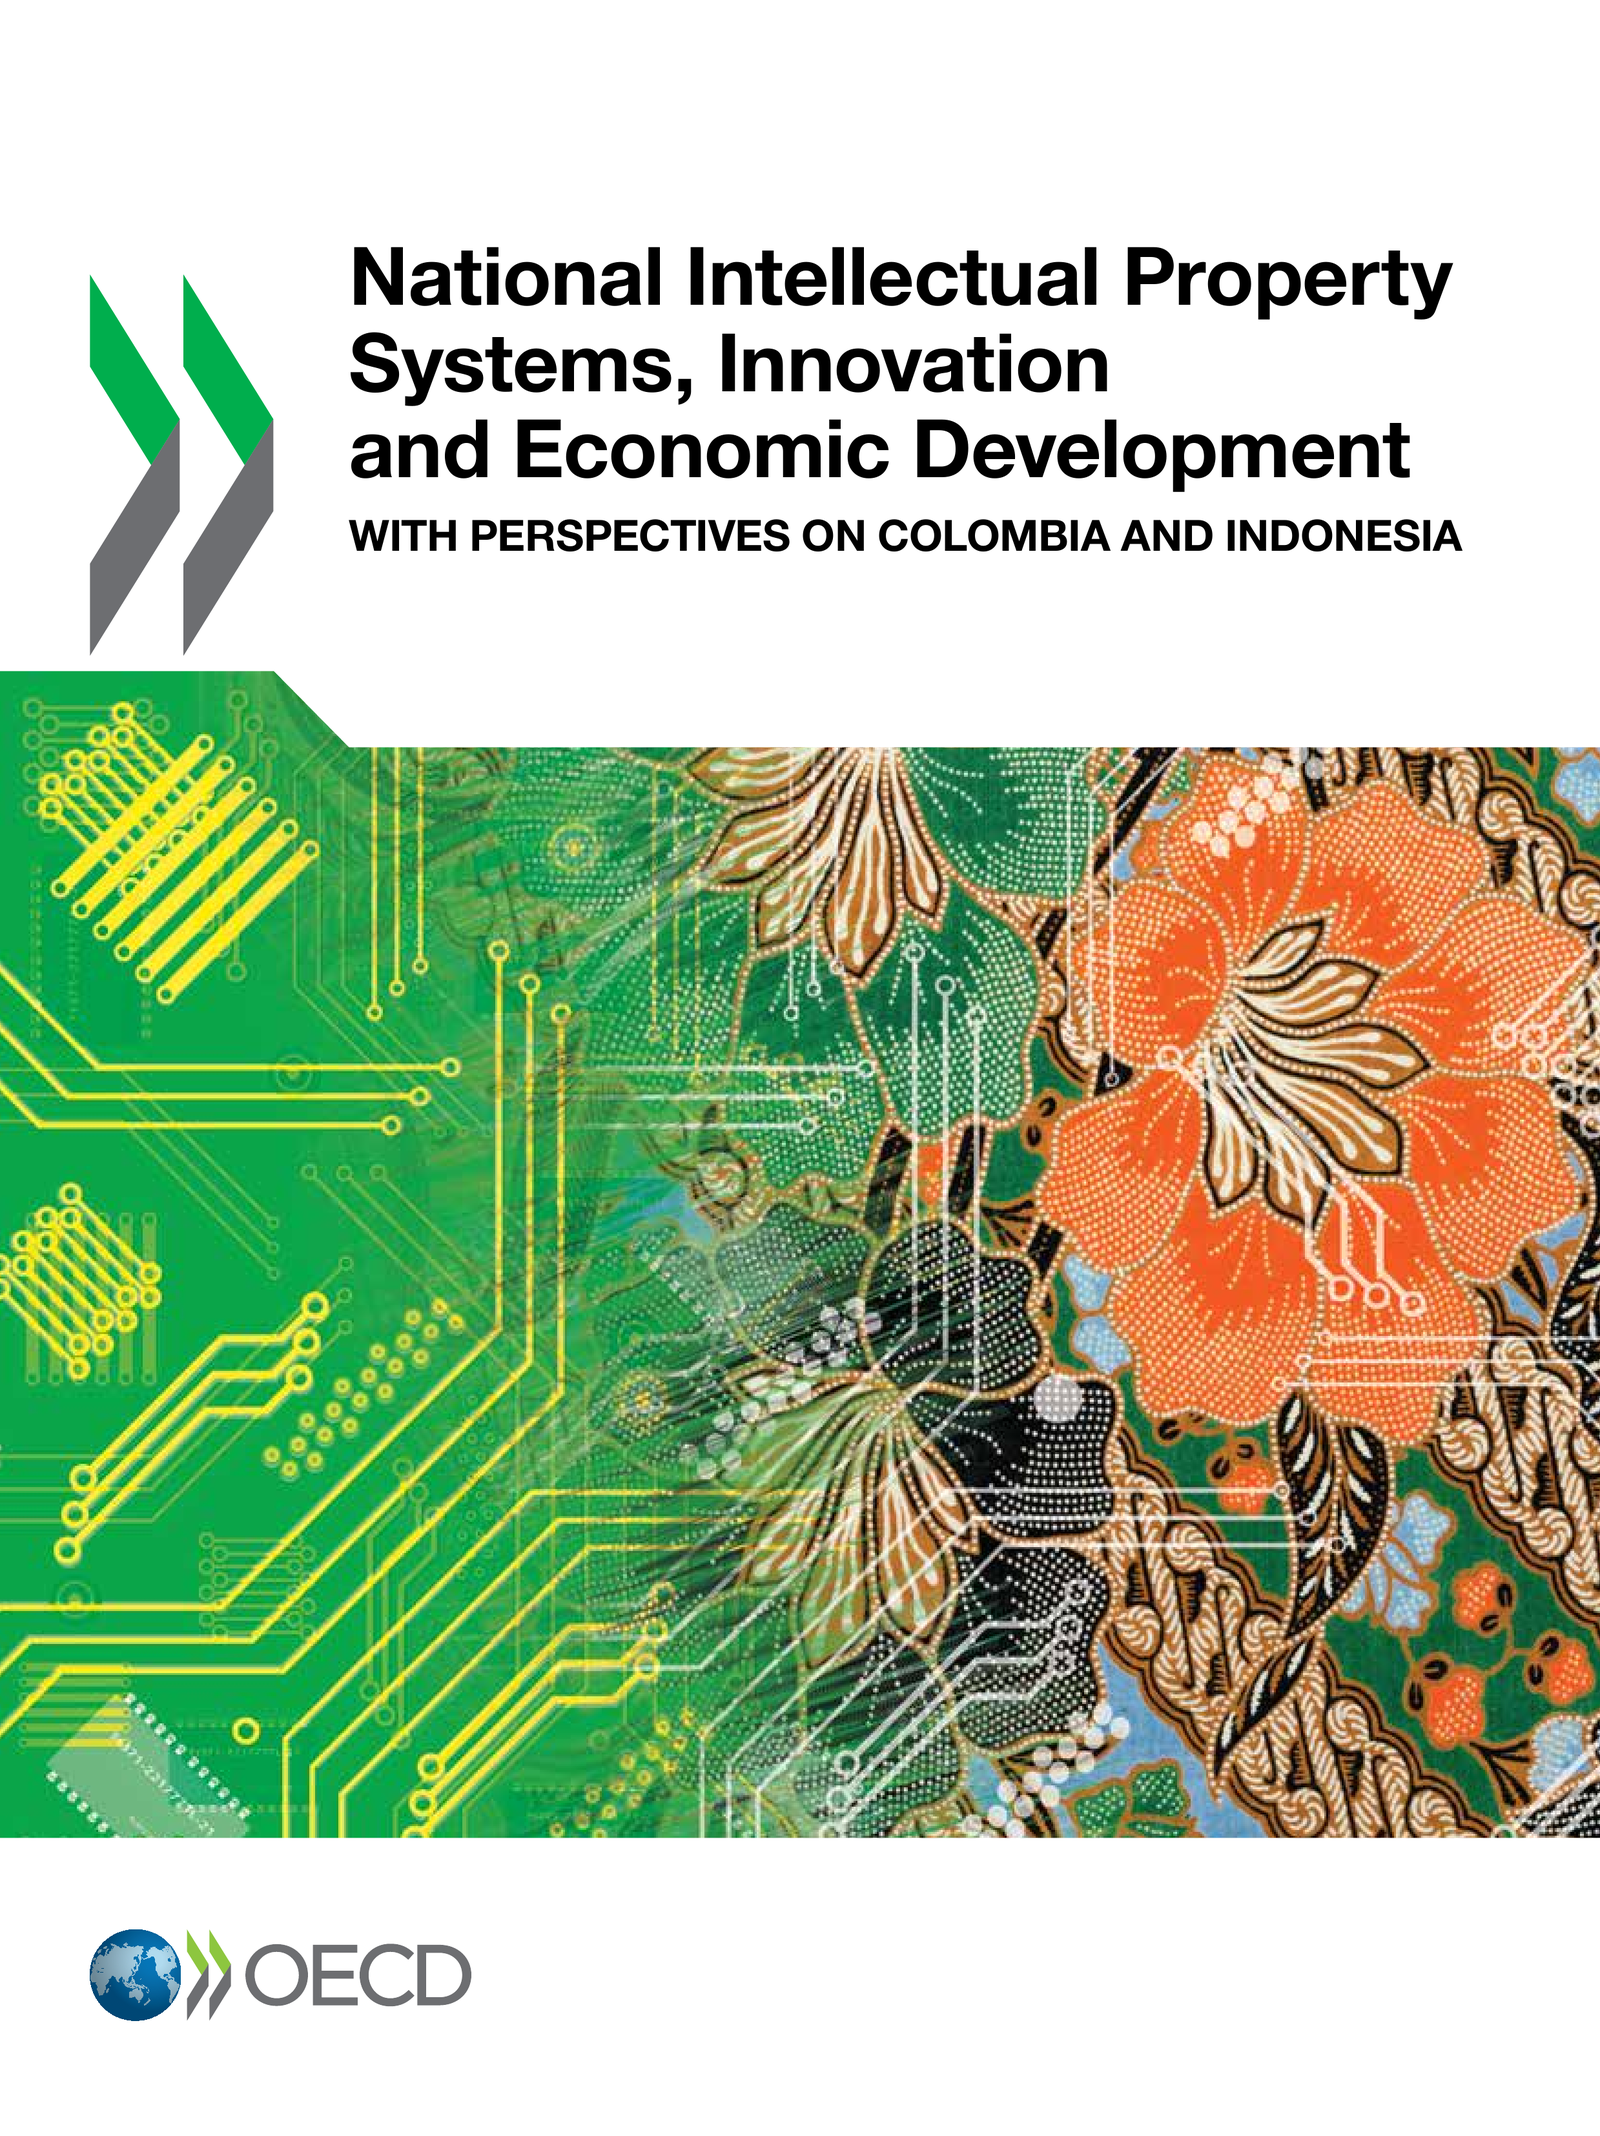 National Intellectual Property Systems, Innovation and Economic Development